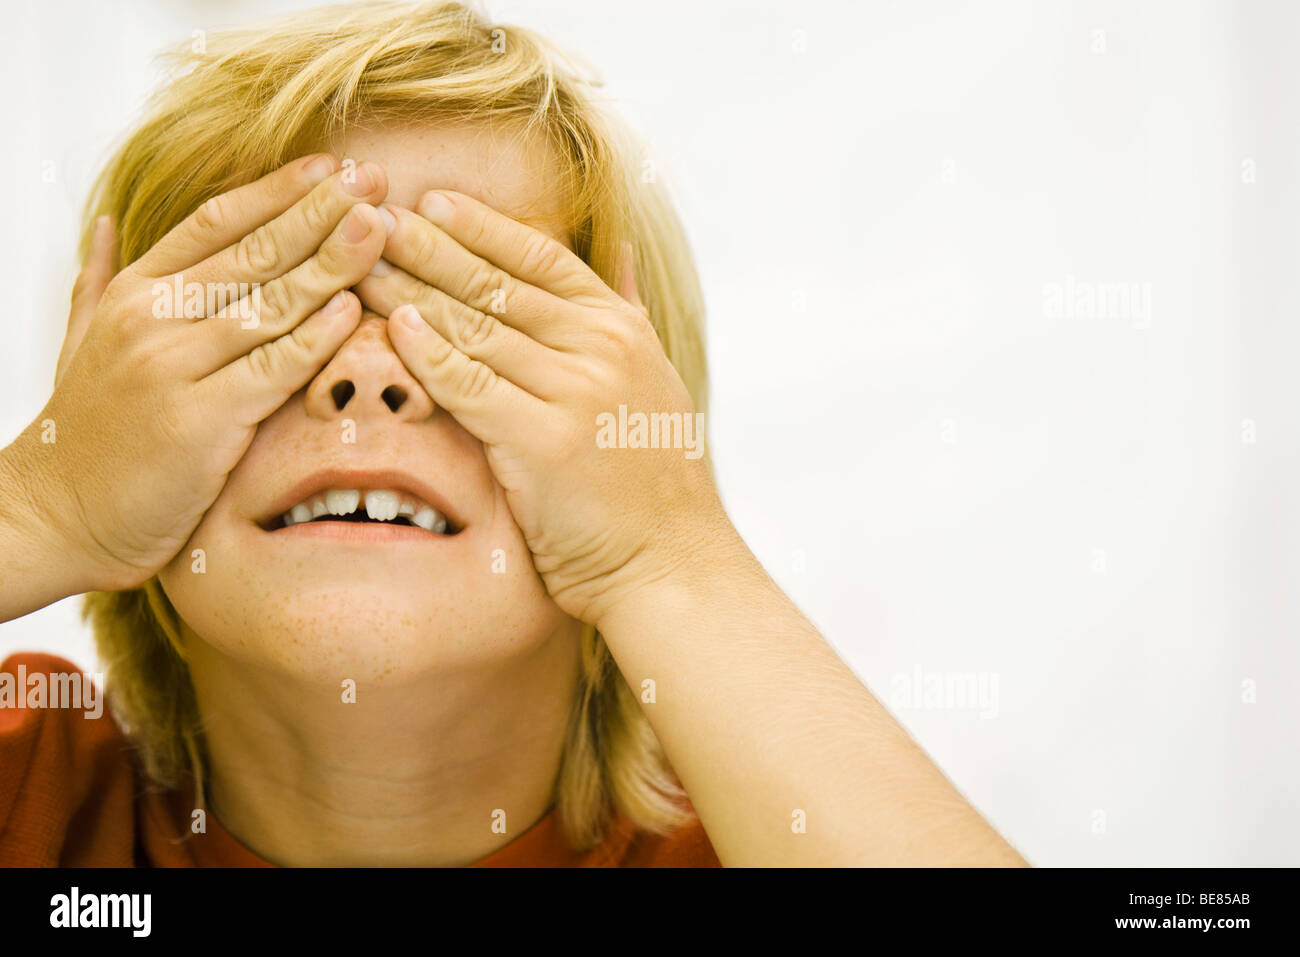 Boy covering eyes with hands - Stock Image